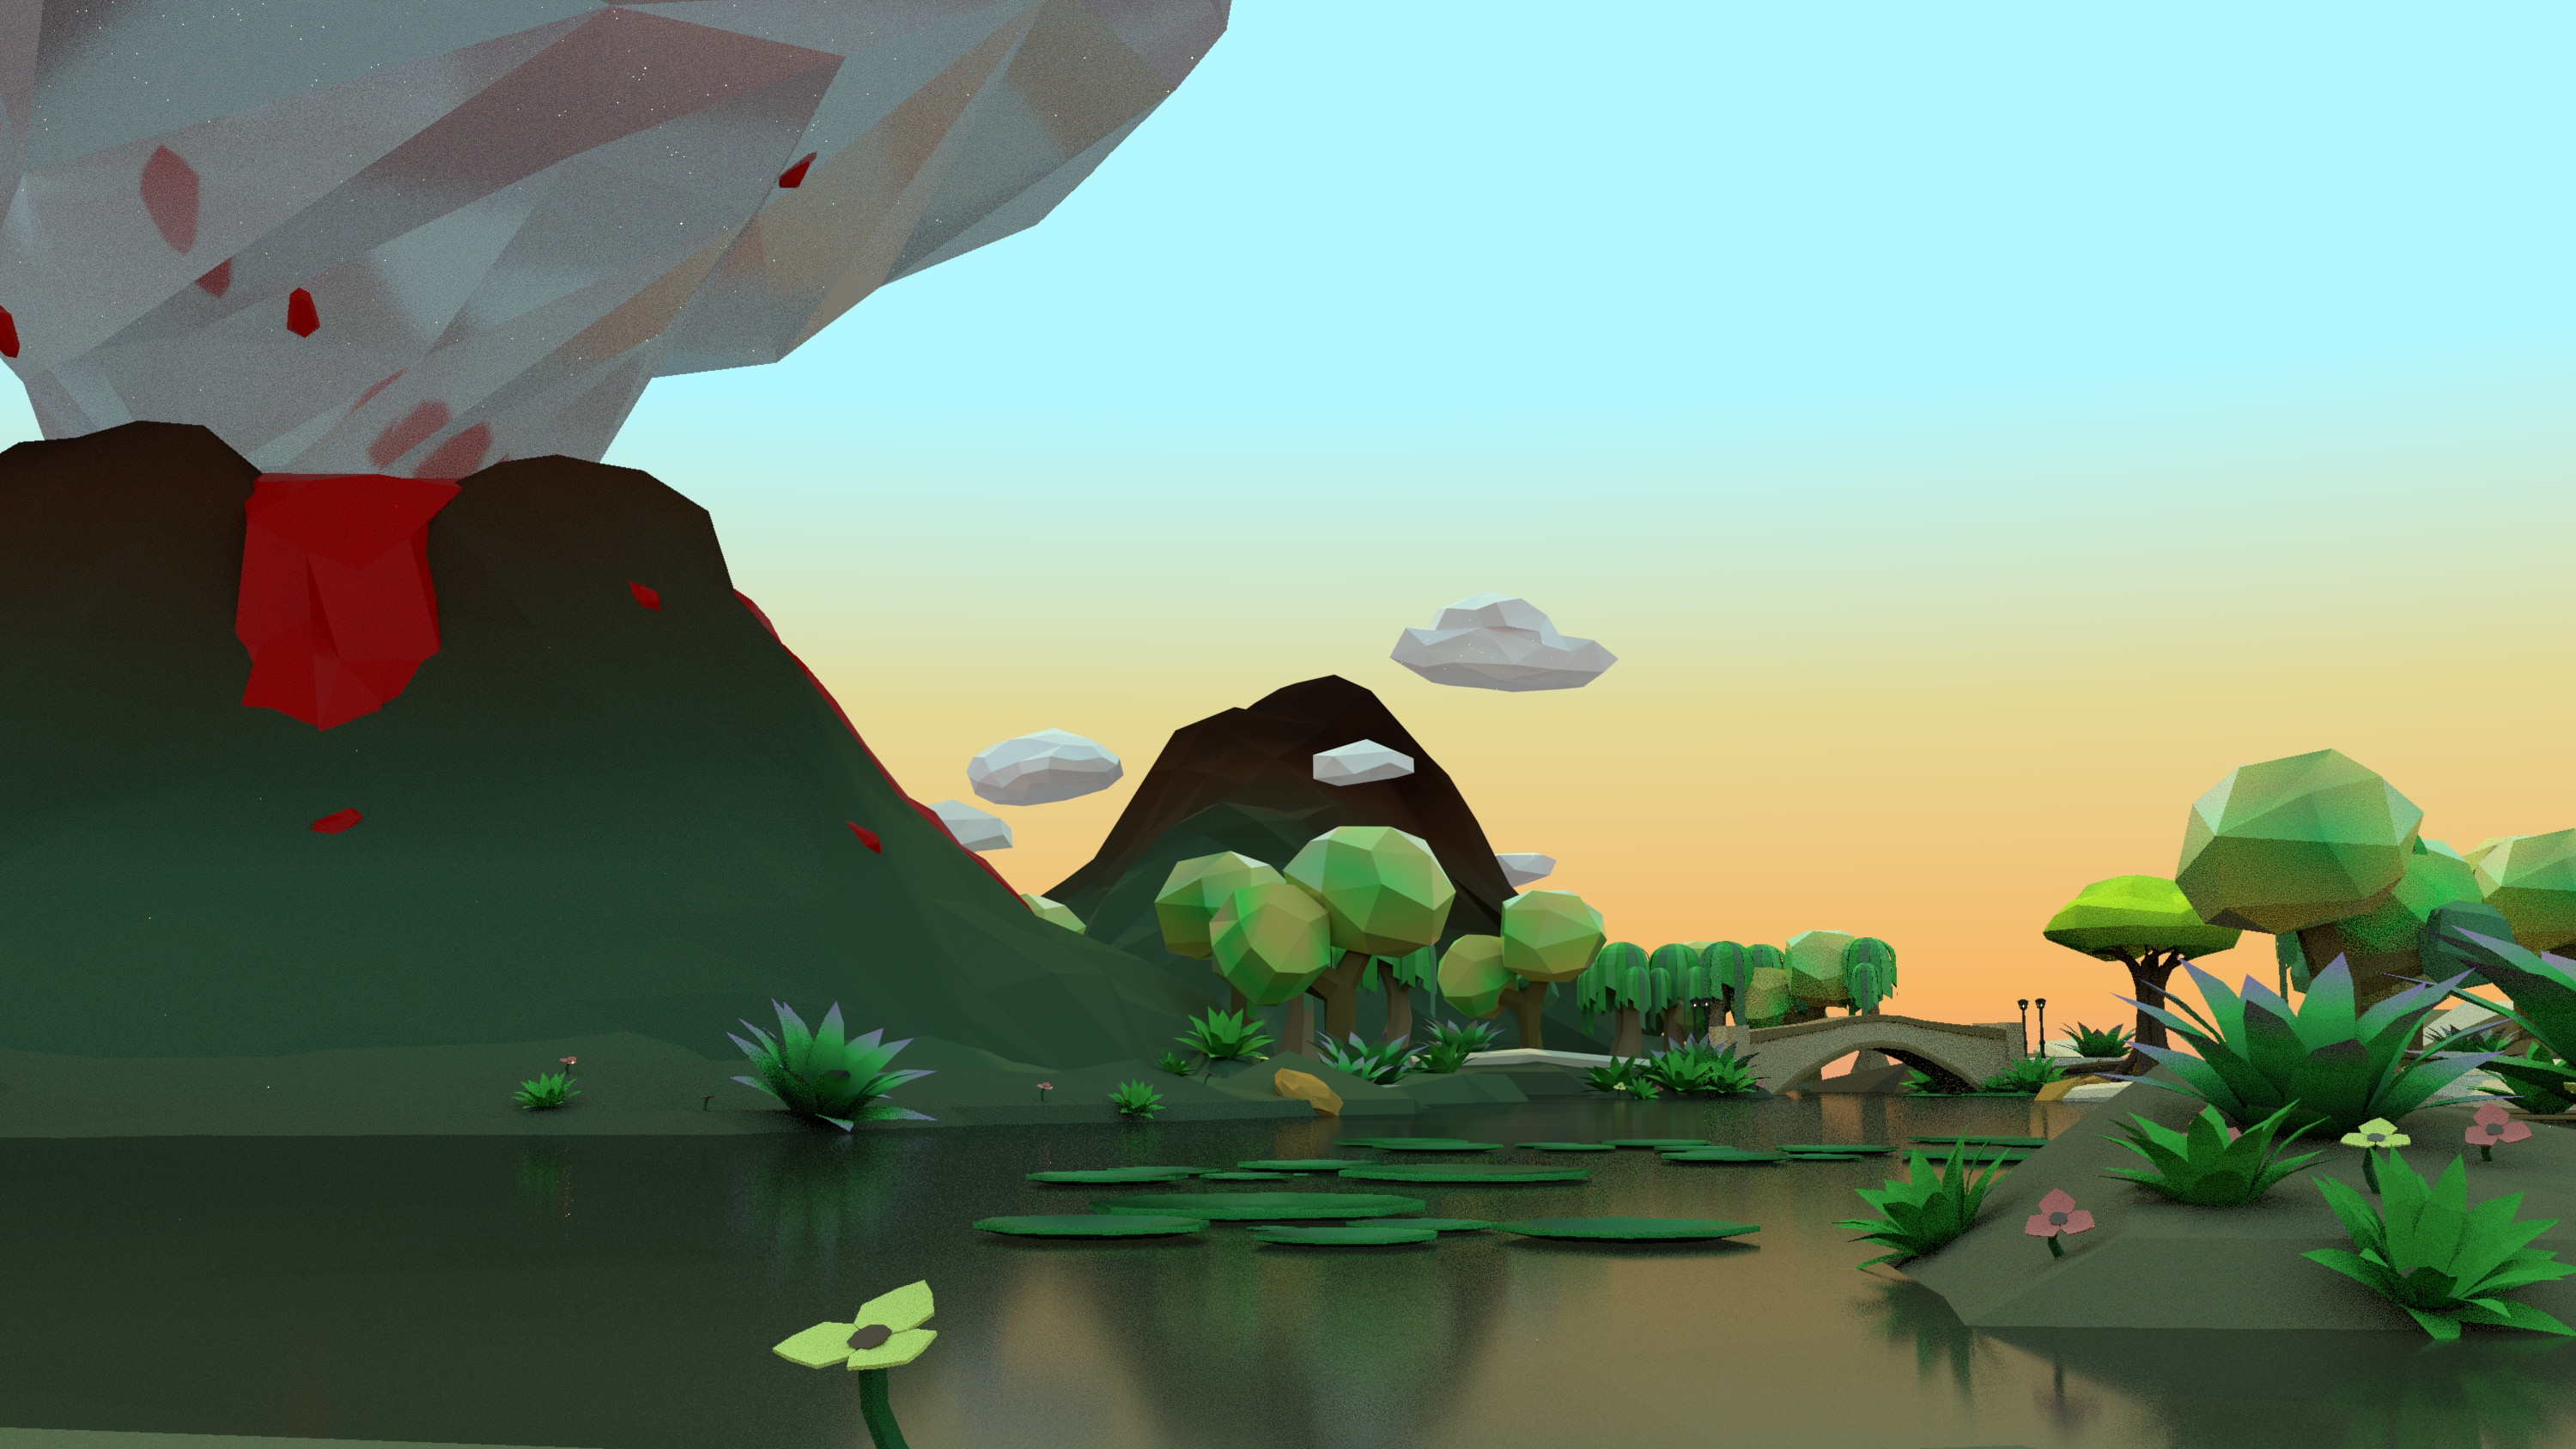 Low Poly Envrionment - Day time